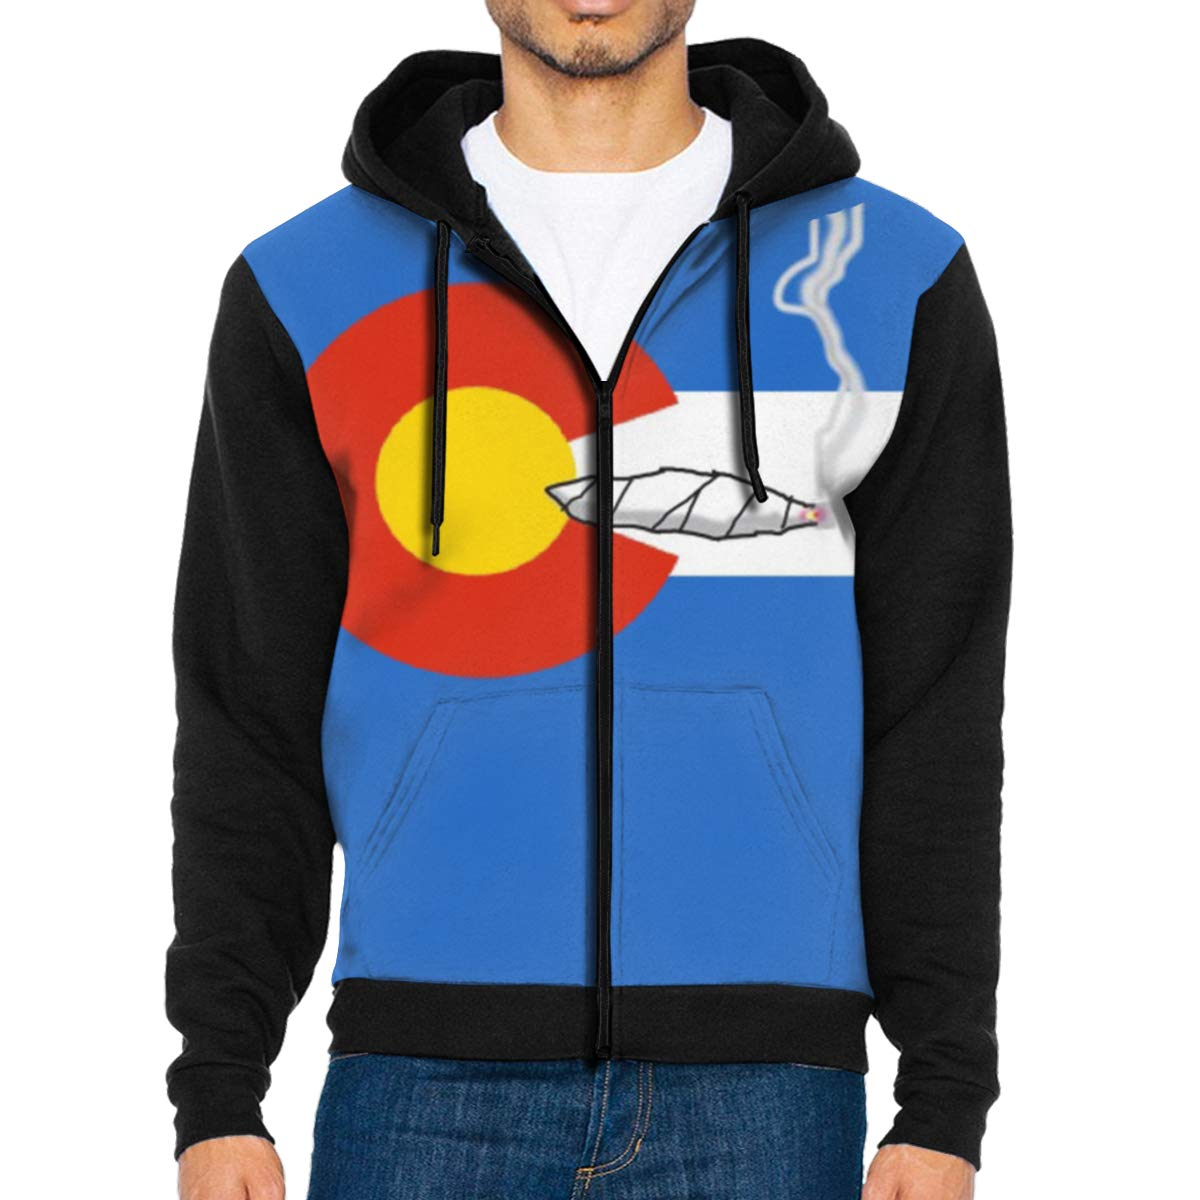 G-Fulling Fun Colorado Flag Smoking 3D Print Fashion Men's Hooded Sweatshirts Drawstring Pullover Hoodies Pockets